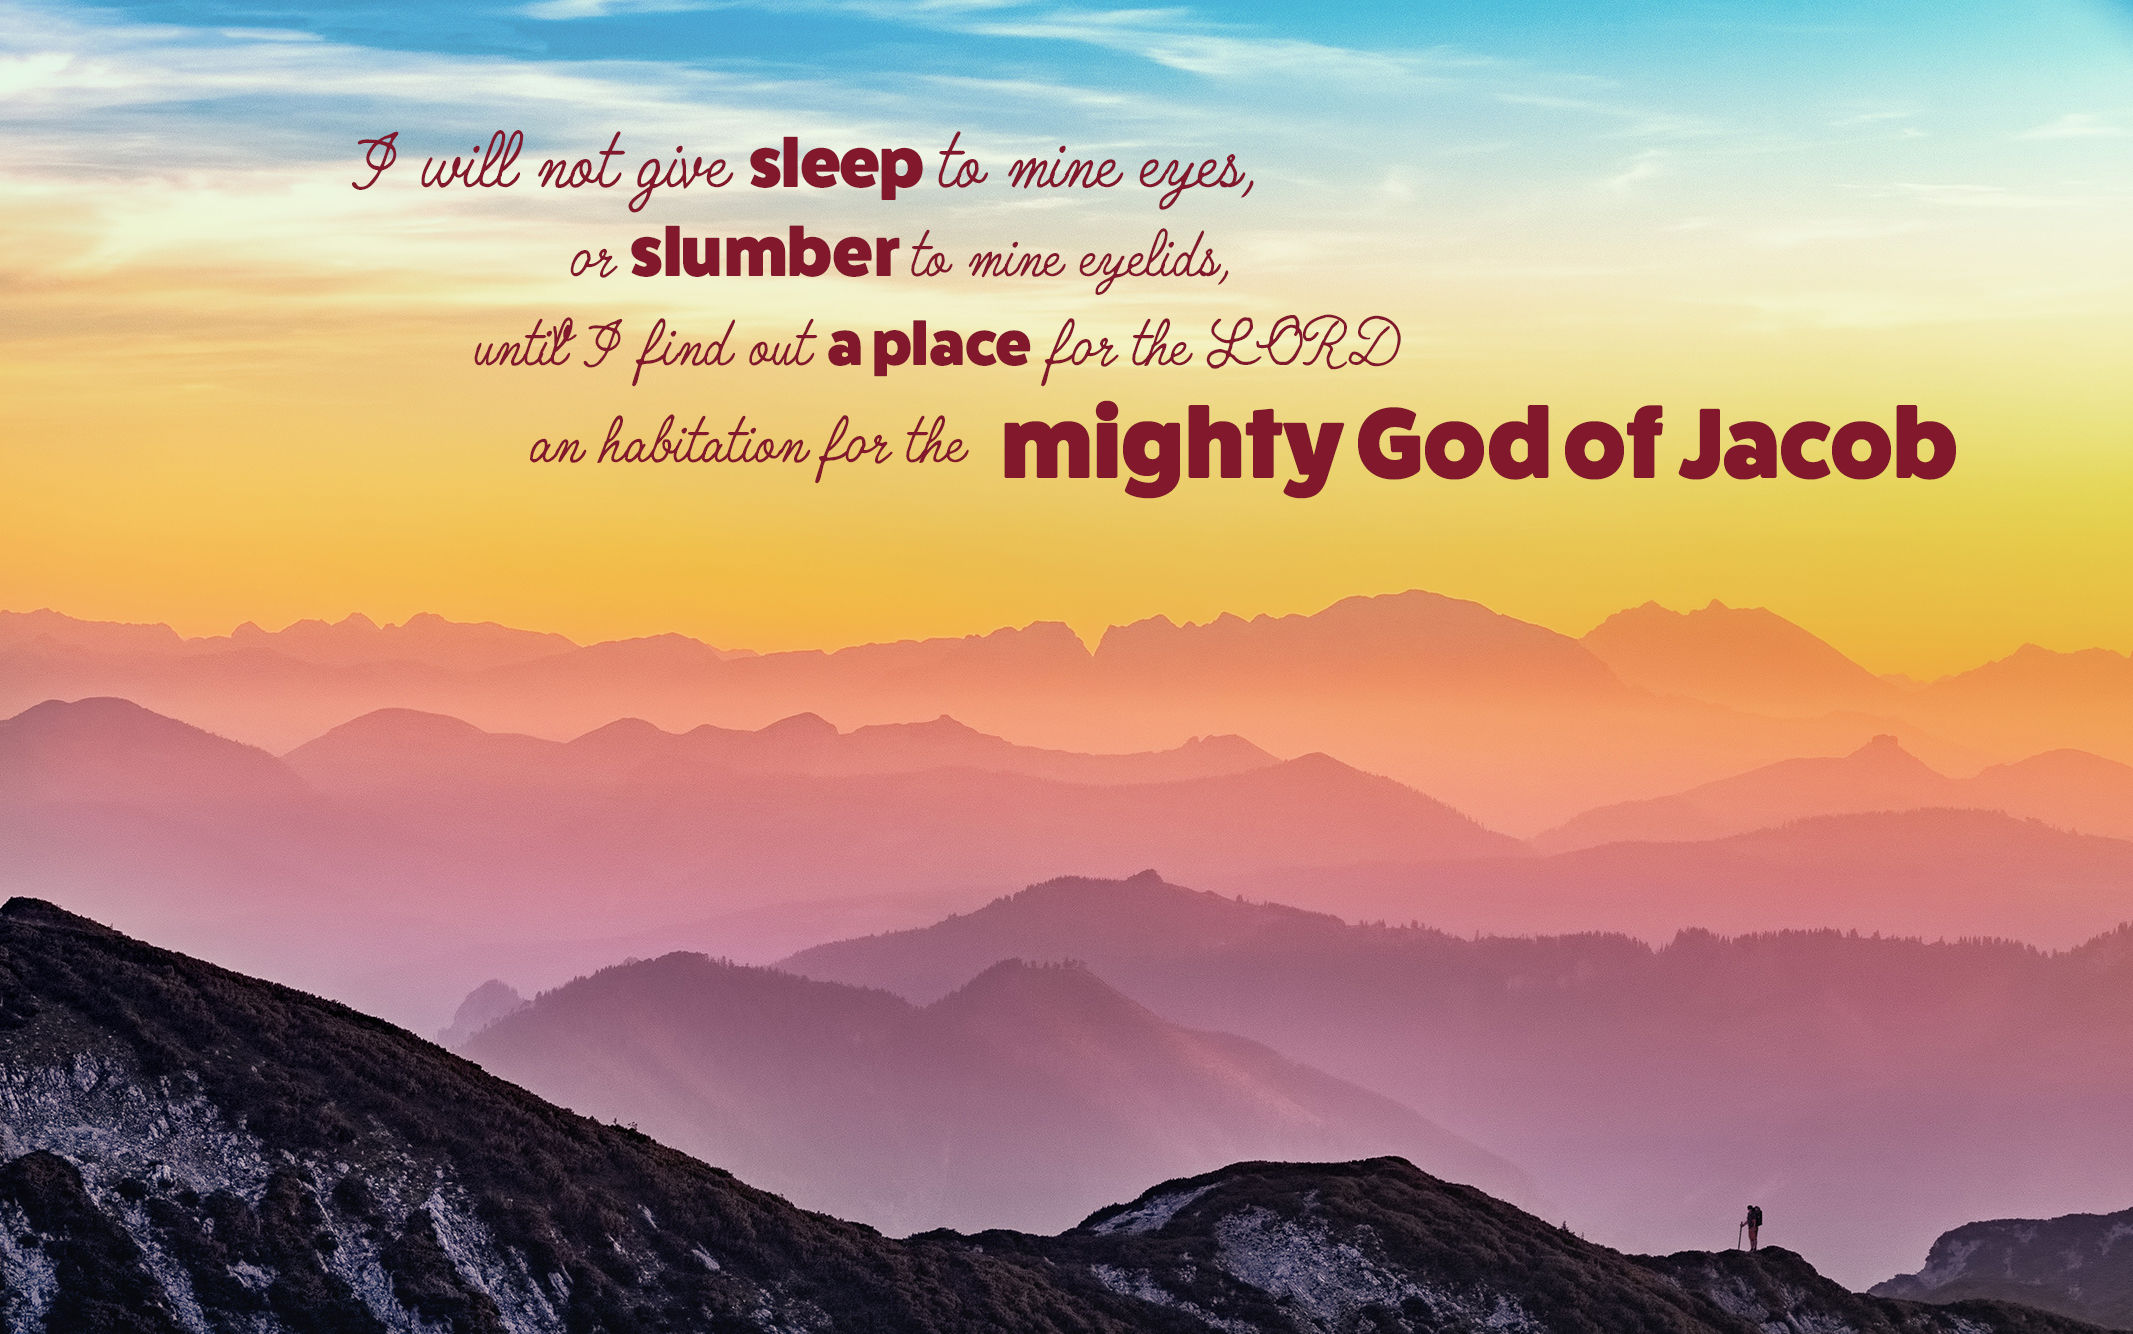 Bible Nature Desktop Backgrounds   Powerful and Uplifting from 2133x1334